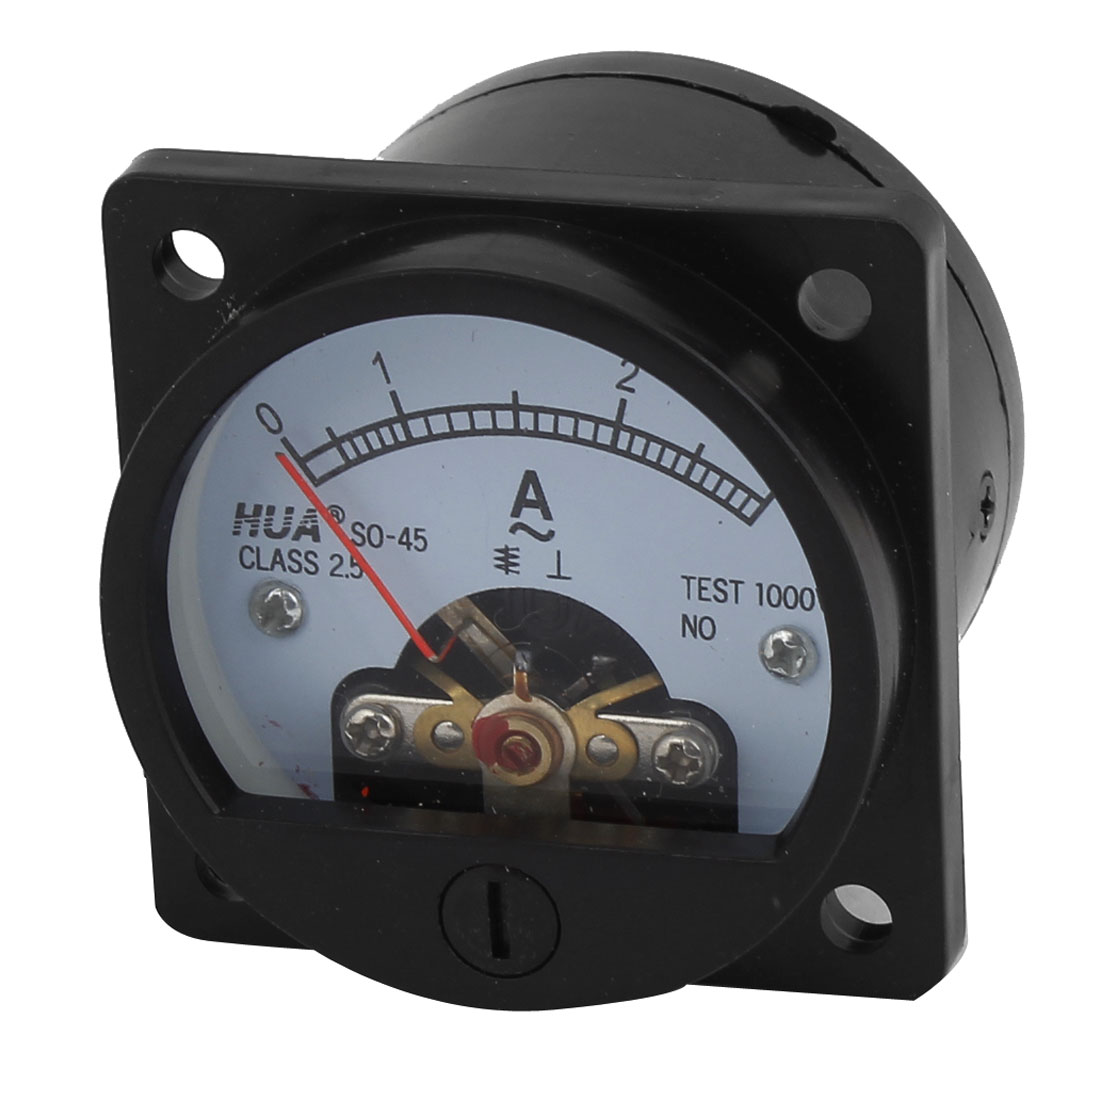 SO-45 Class 2.5 Accuracy AC 0-3A Analog Ammeter Panel Meter Black